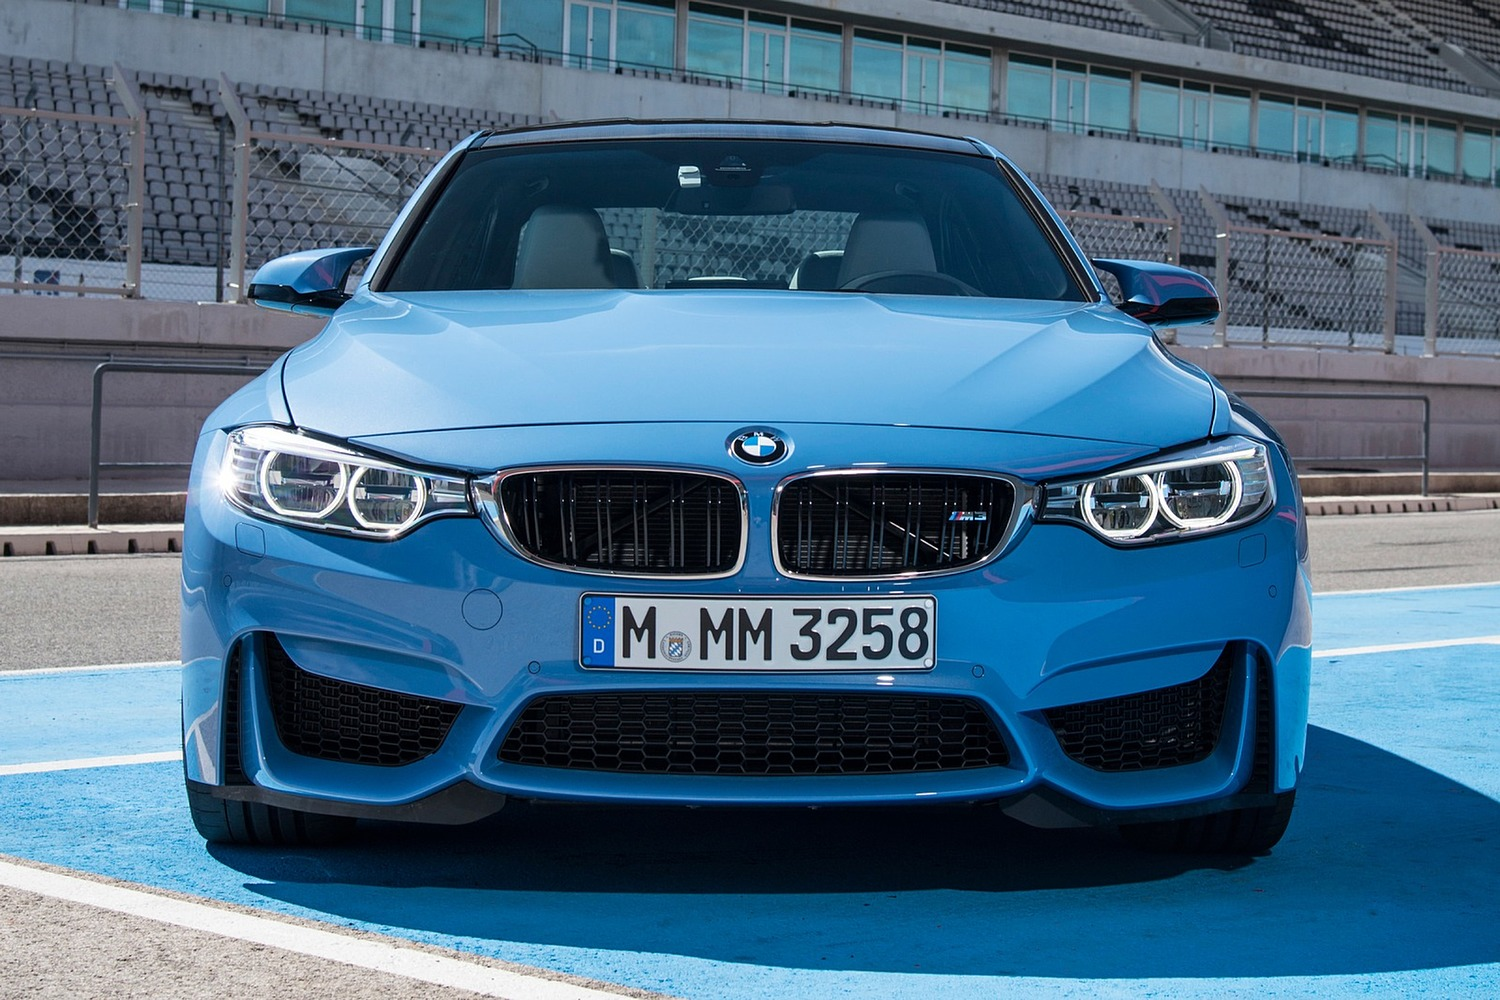 2018 BMW M3 Engine And Reviews